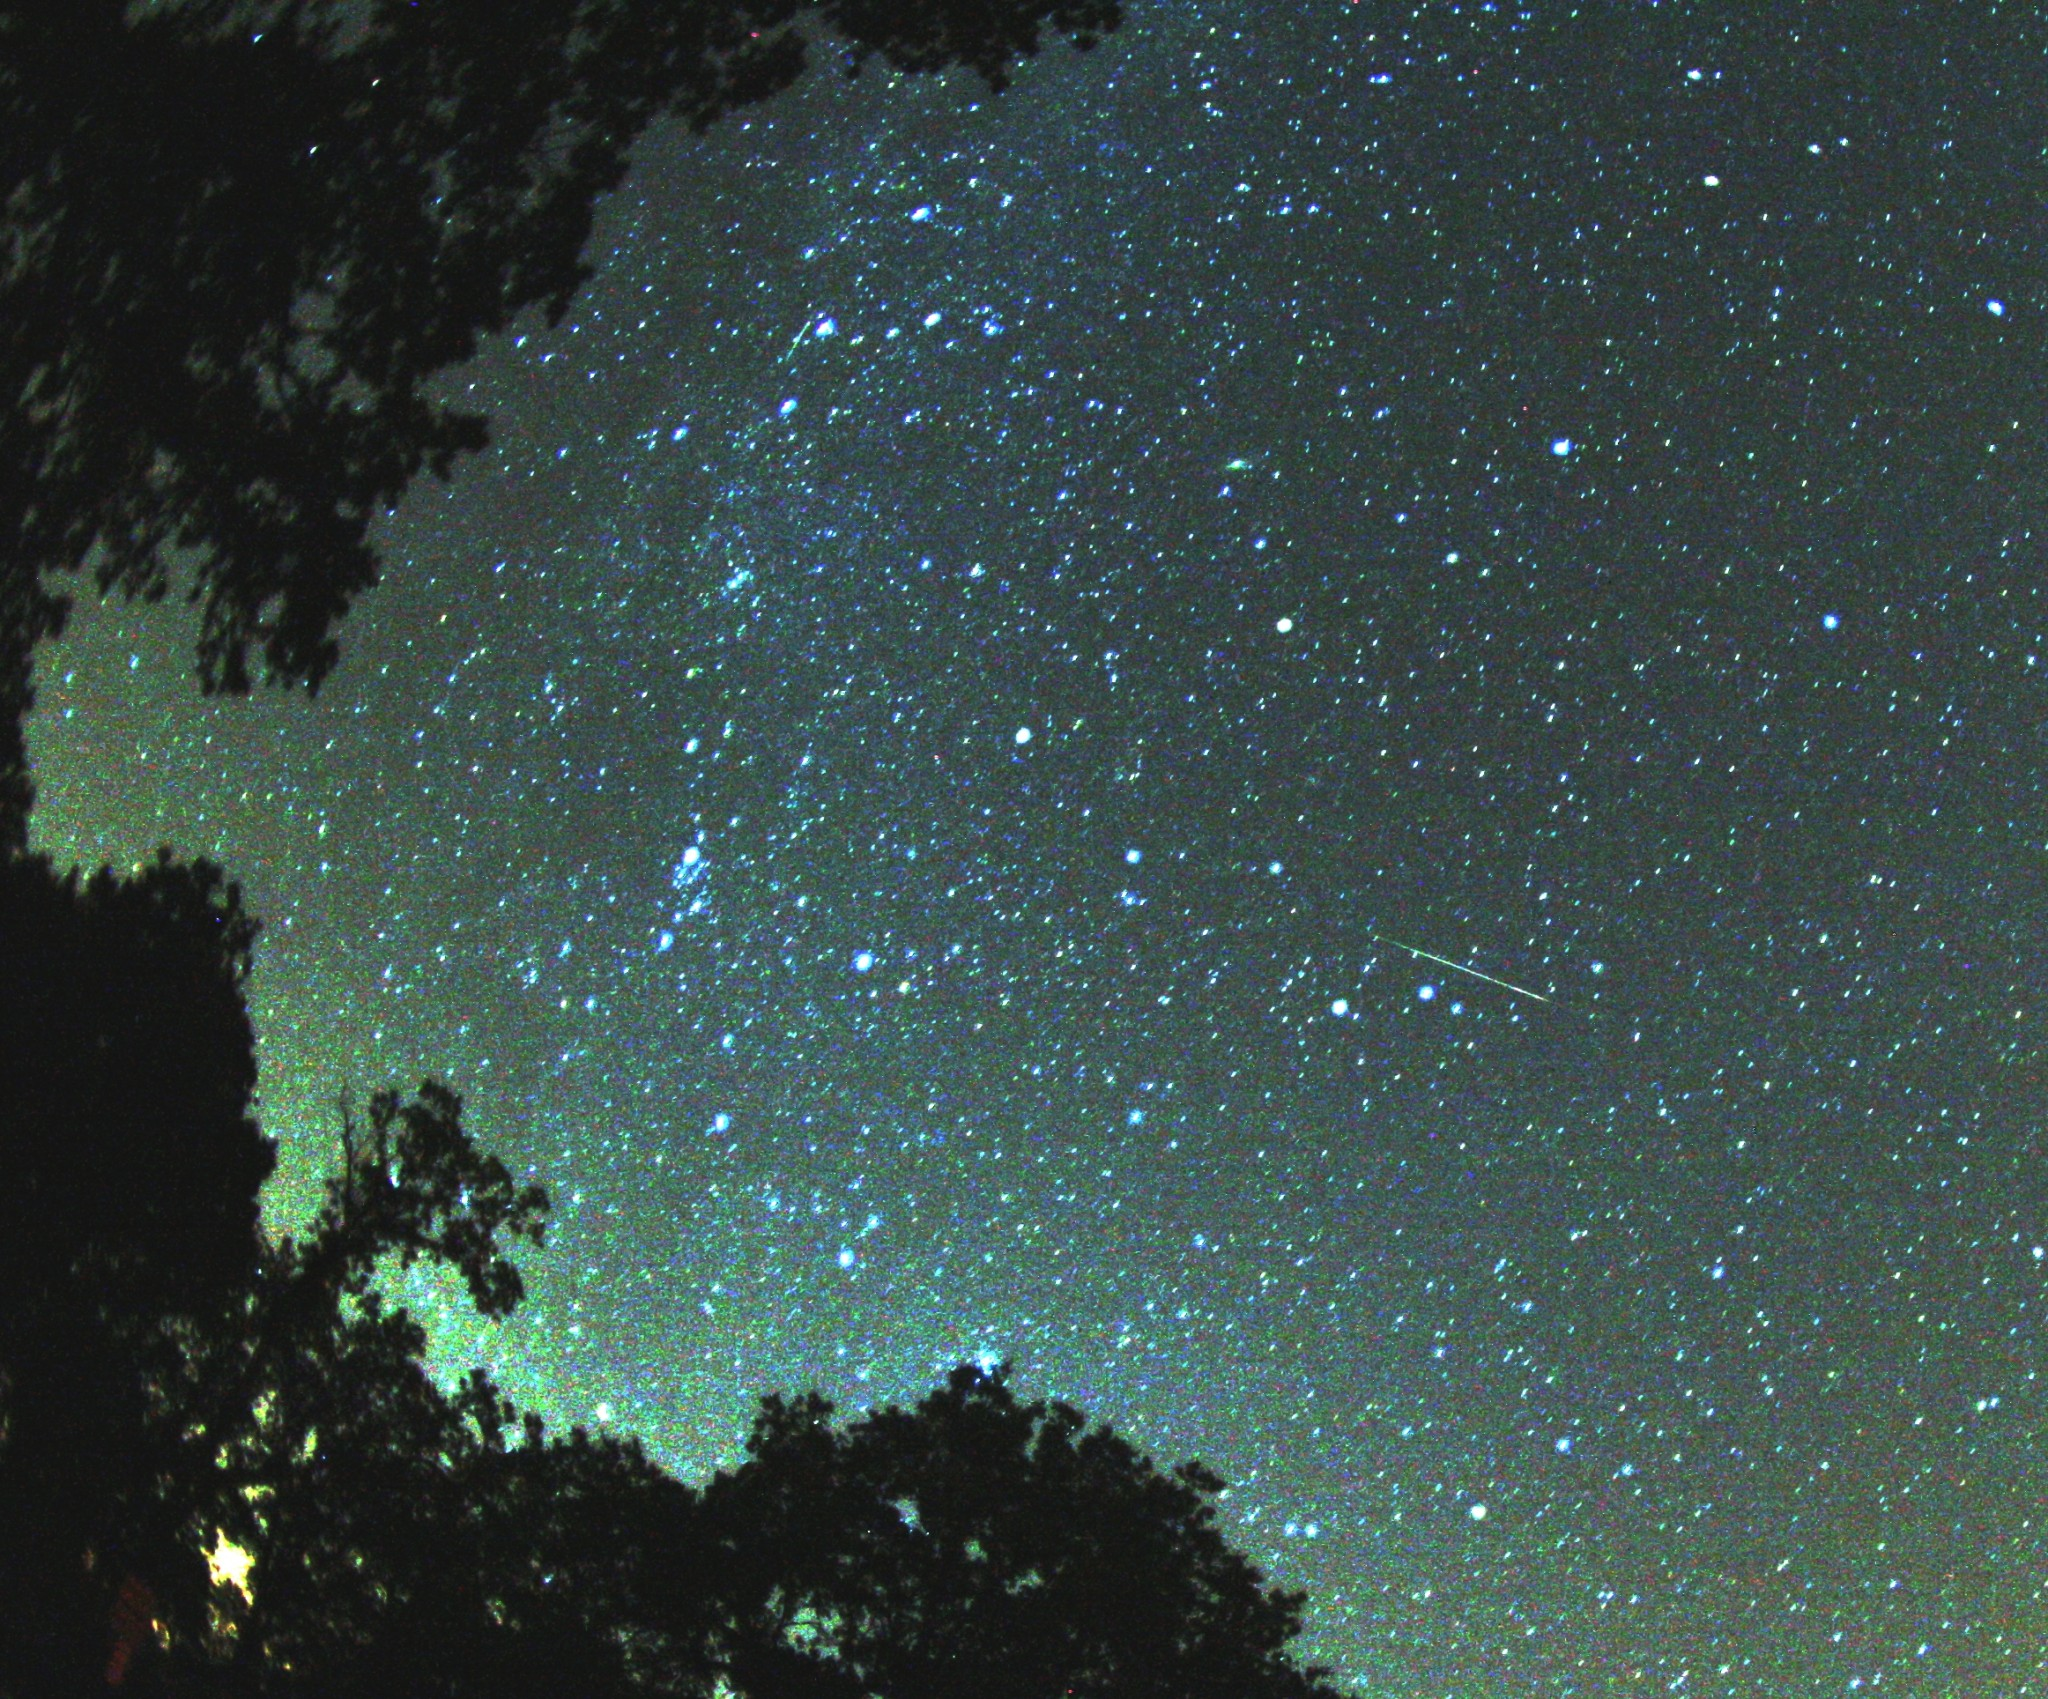 A shooting star during the 2007 Perseid meteor shower